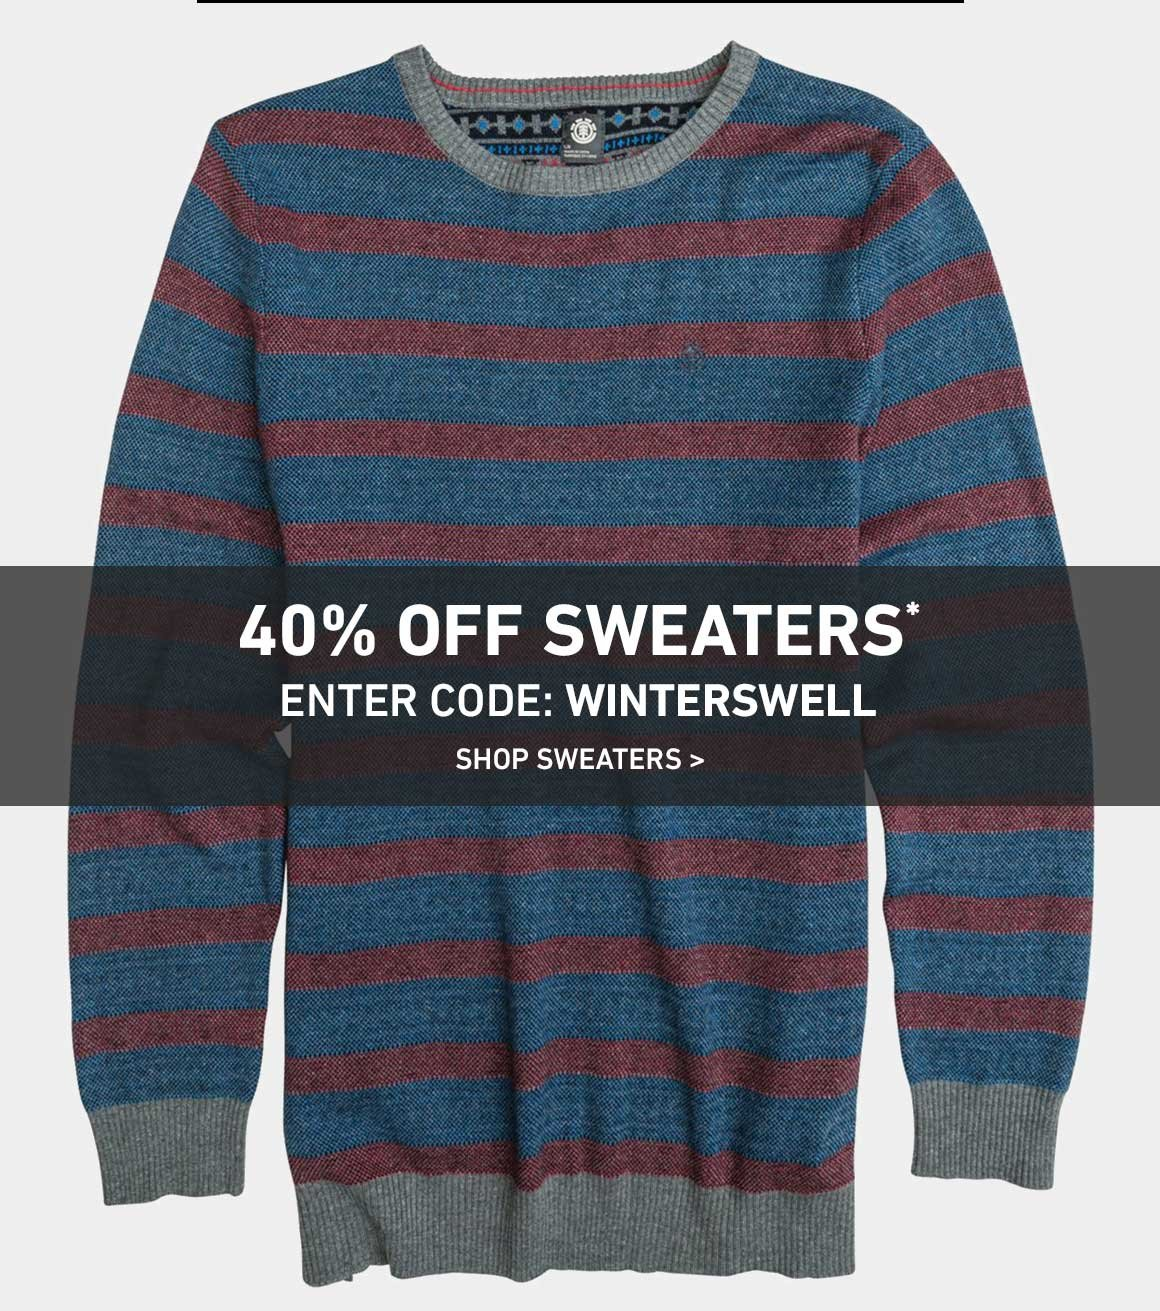 ENDS TONIGHT AT MIDNIGHT: 40% Off New Sweaters! Enter Code: WINTERSWELL